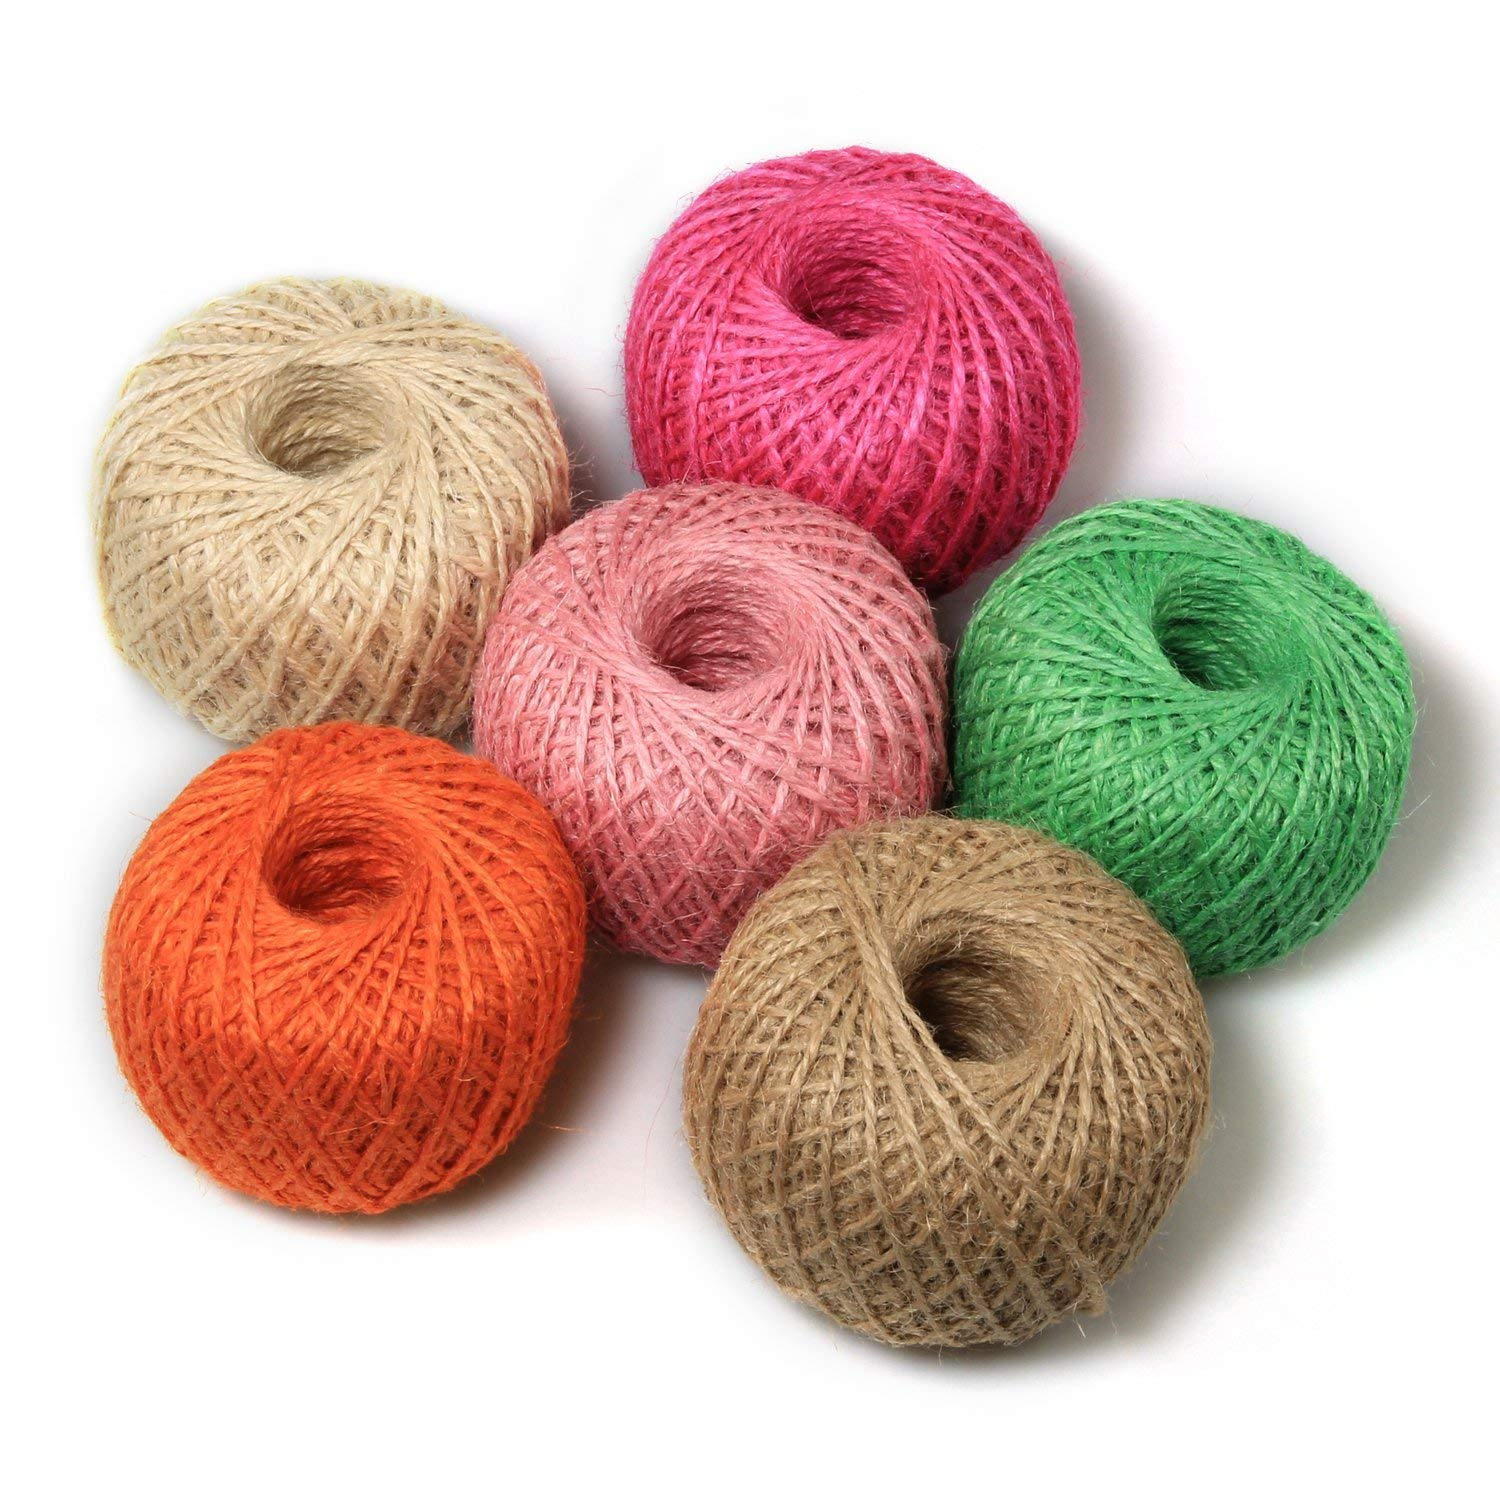 Digiroot Natural Jute Twine Perfect for Gift Packaging, Gardening Applications, Arts and Crafts Project and Home Decorations - Pack of 6 , 328ft/roll (Beige,Hot Pink,Light Pink,Green,Orange,Brown) by Digiroot